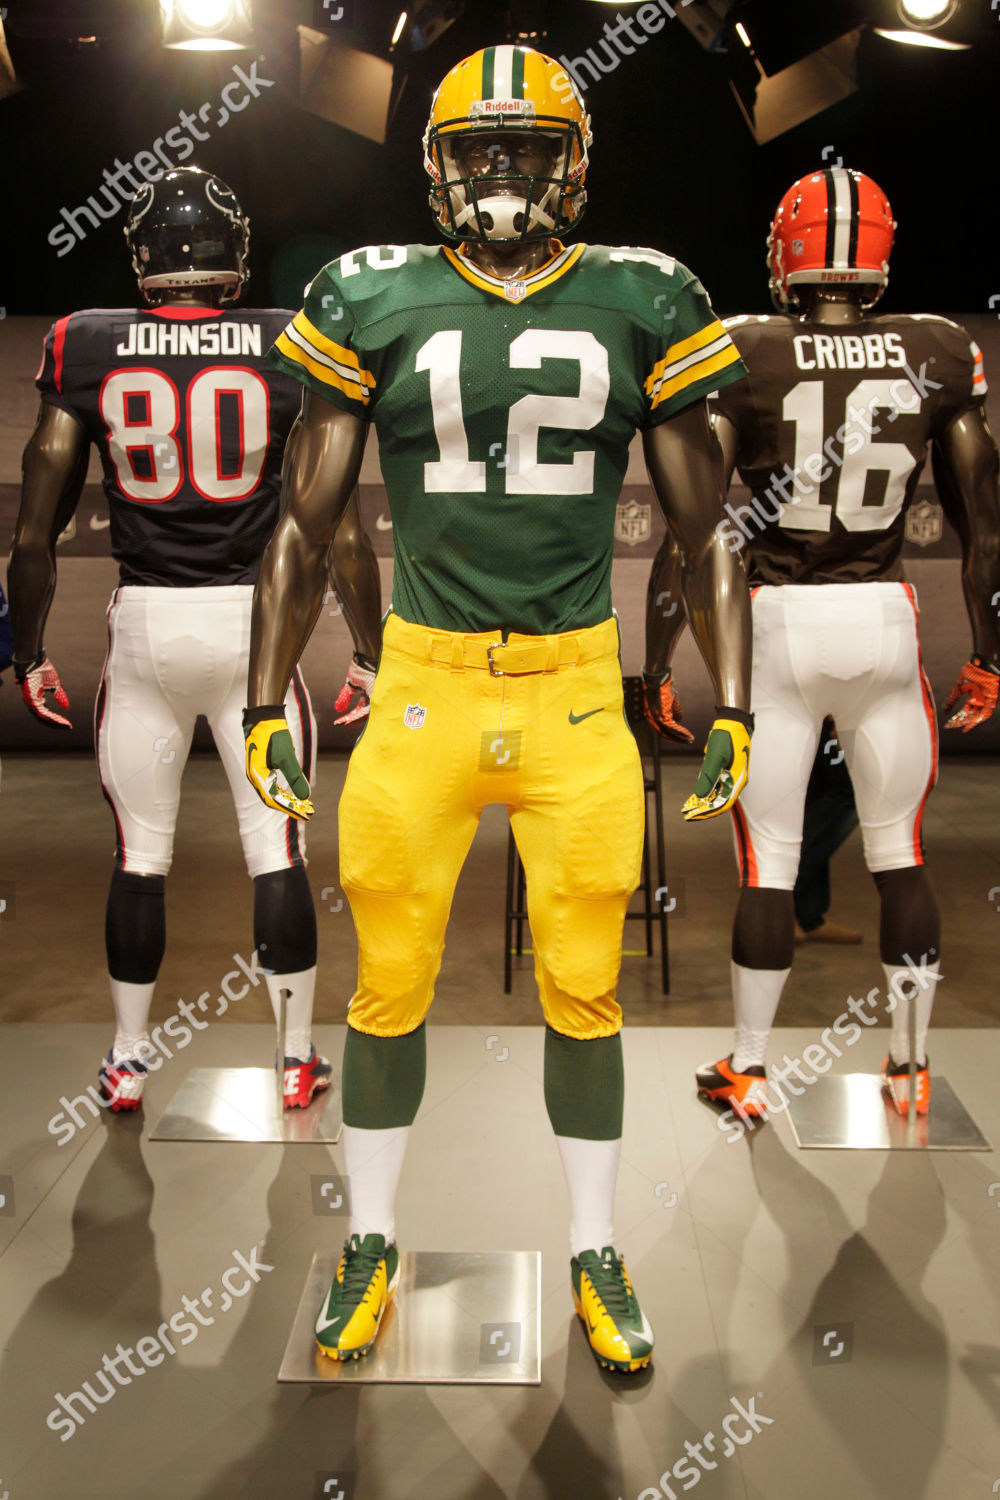 innovative design 0b64b f849b new Green Bay Packers uniform displayed on Editorial Stock ...